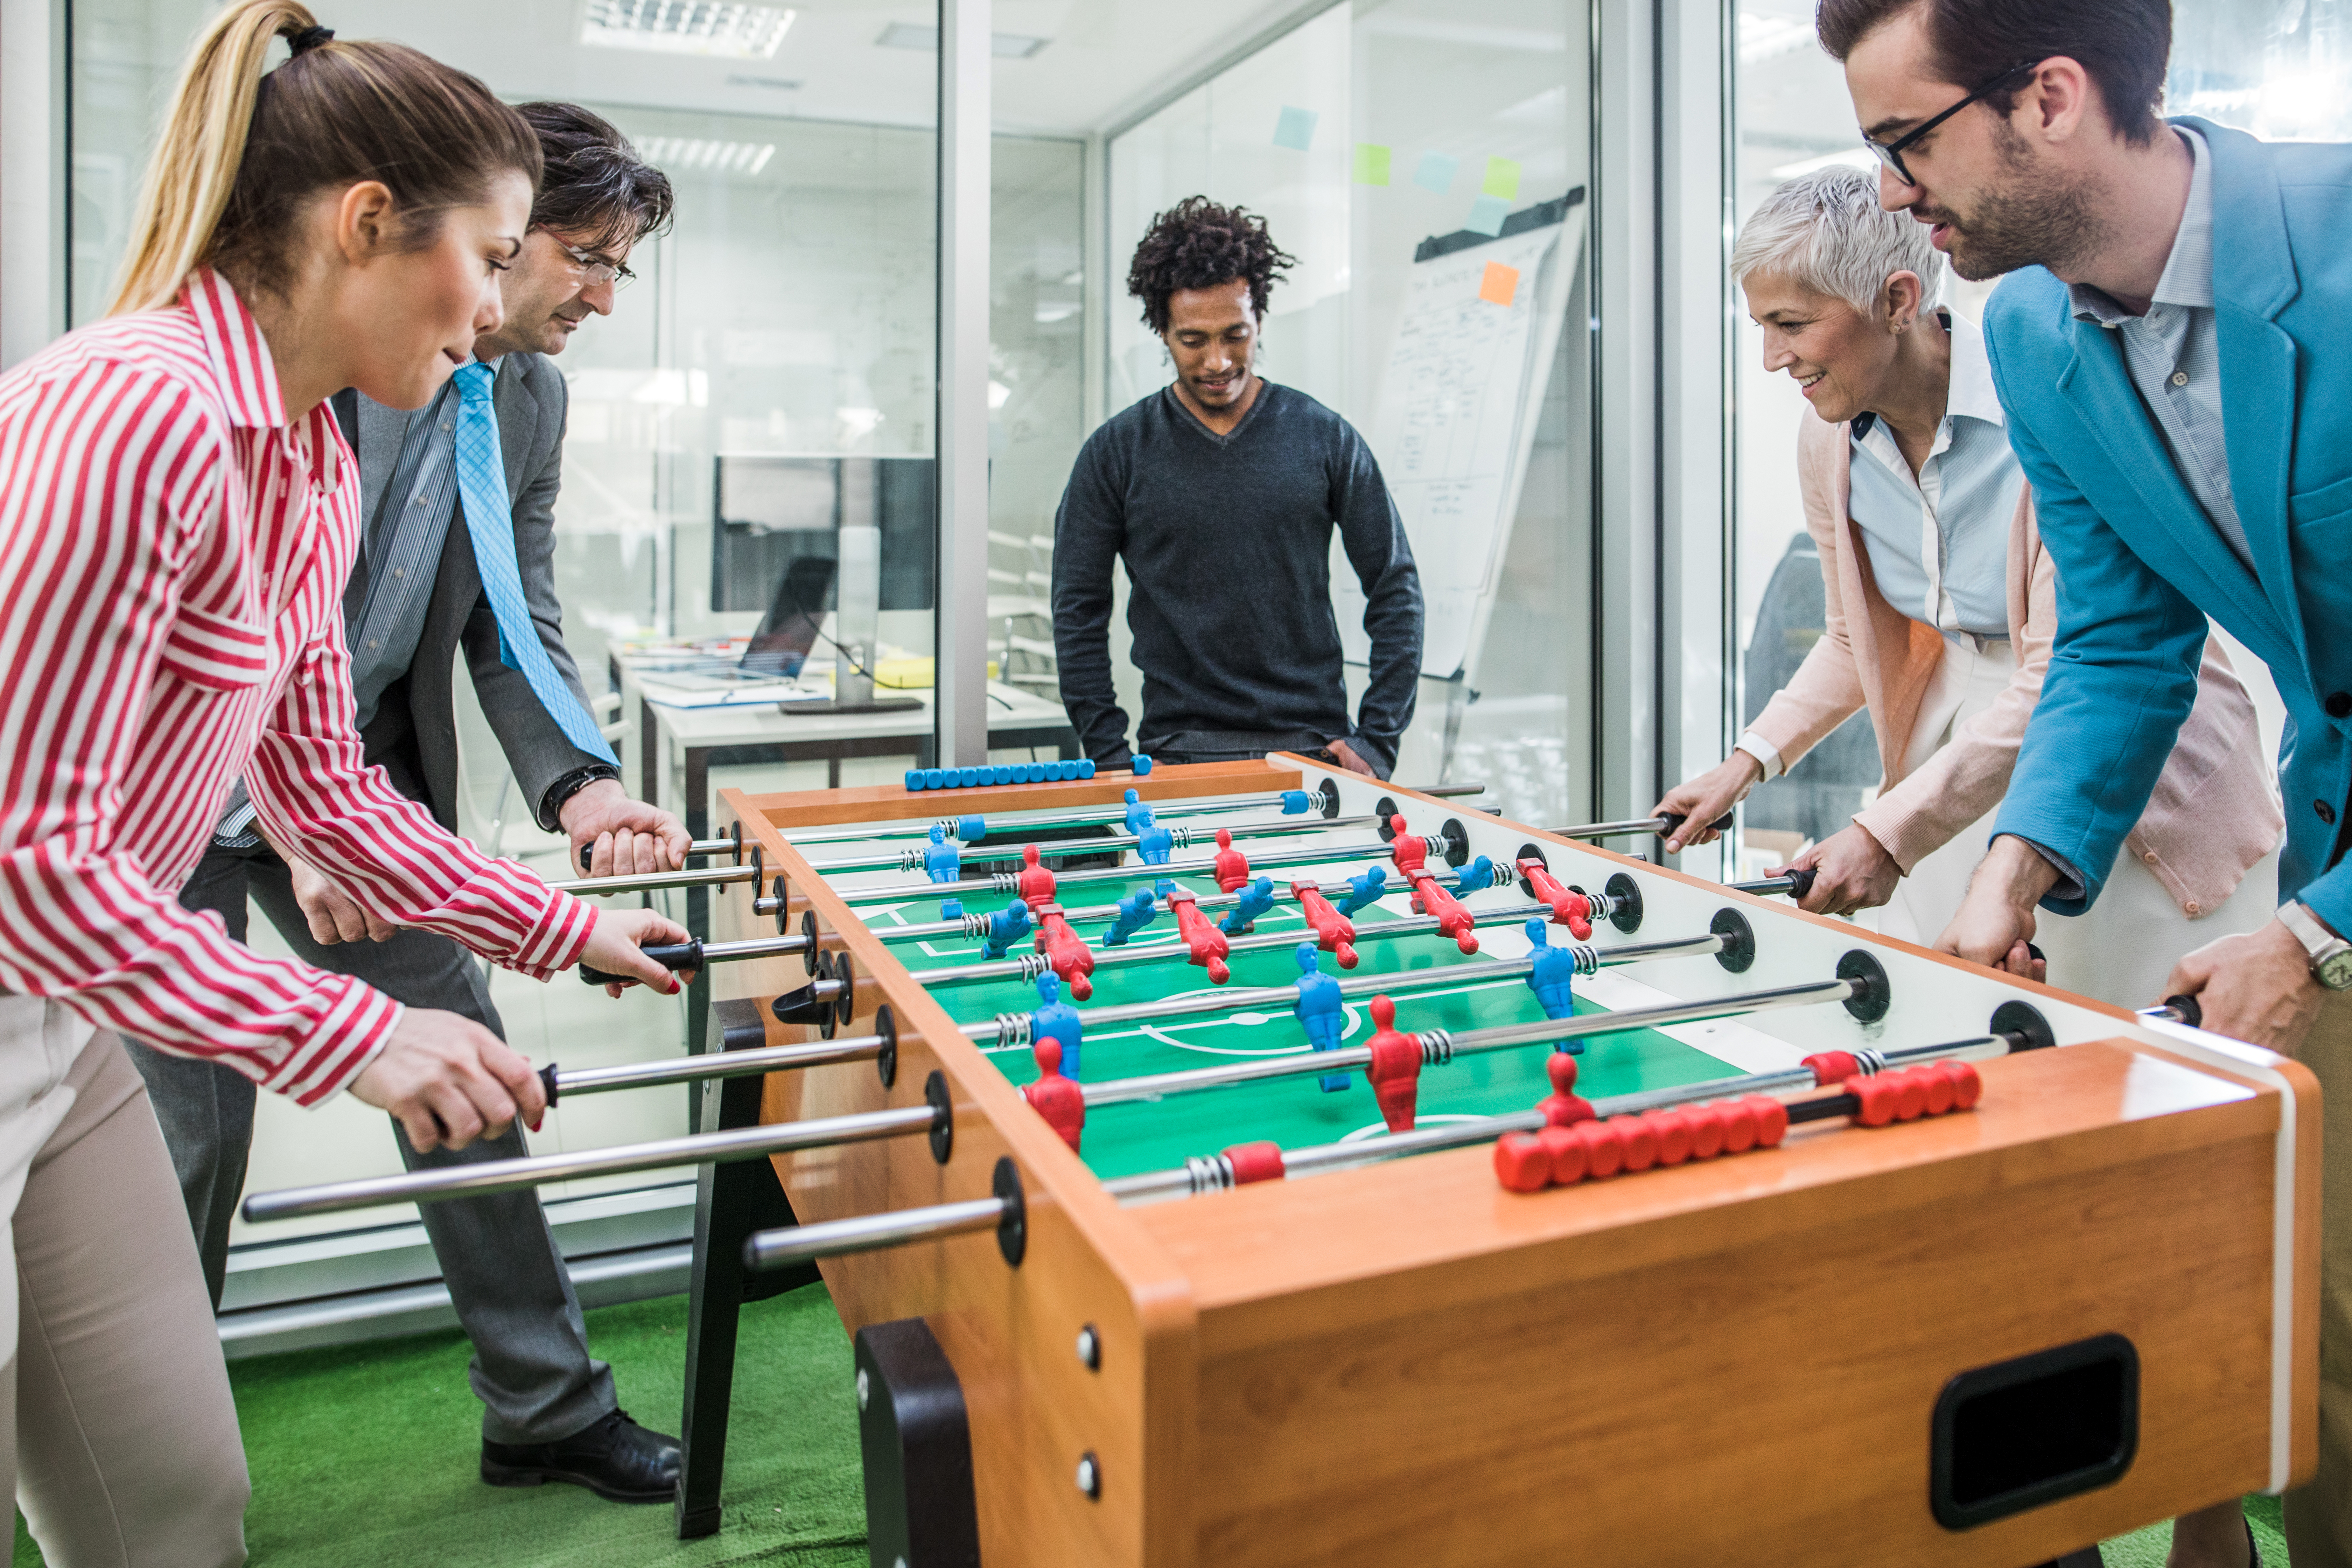 A Stock Photo of a team of happy entrepreneurs having fun on a break while playing table soccer.